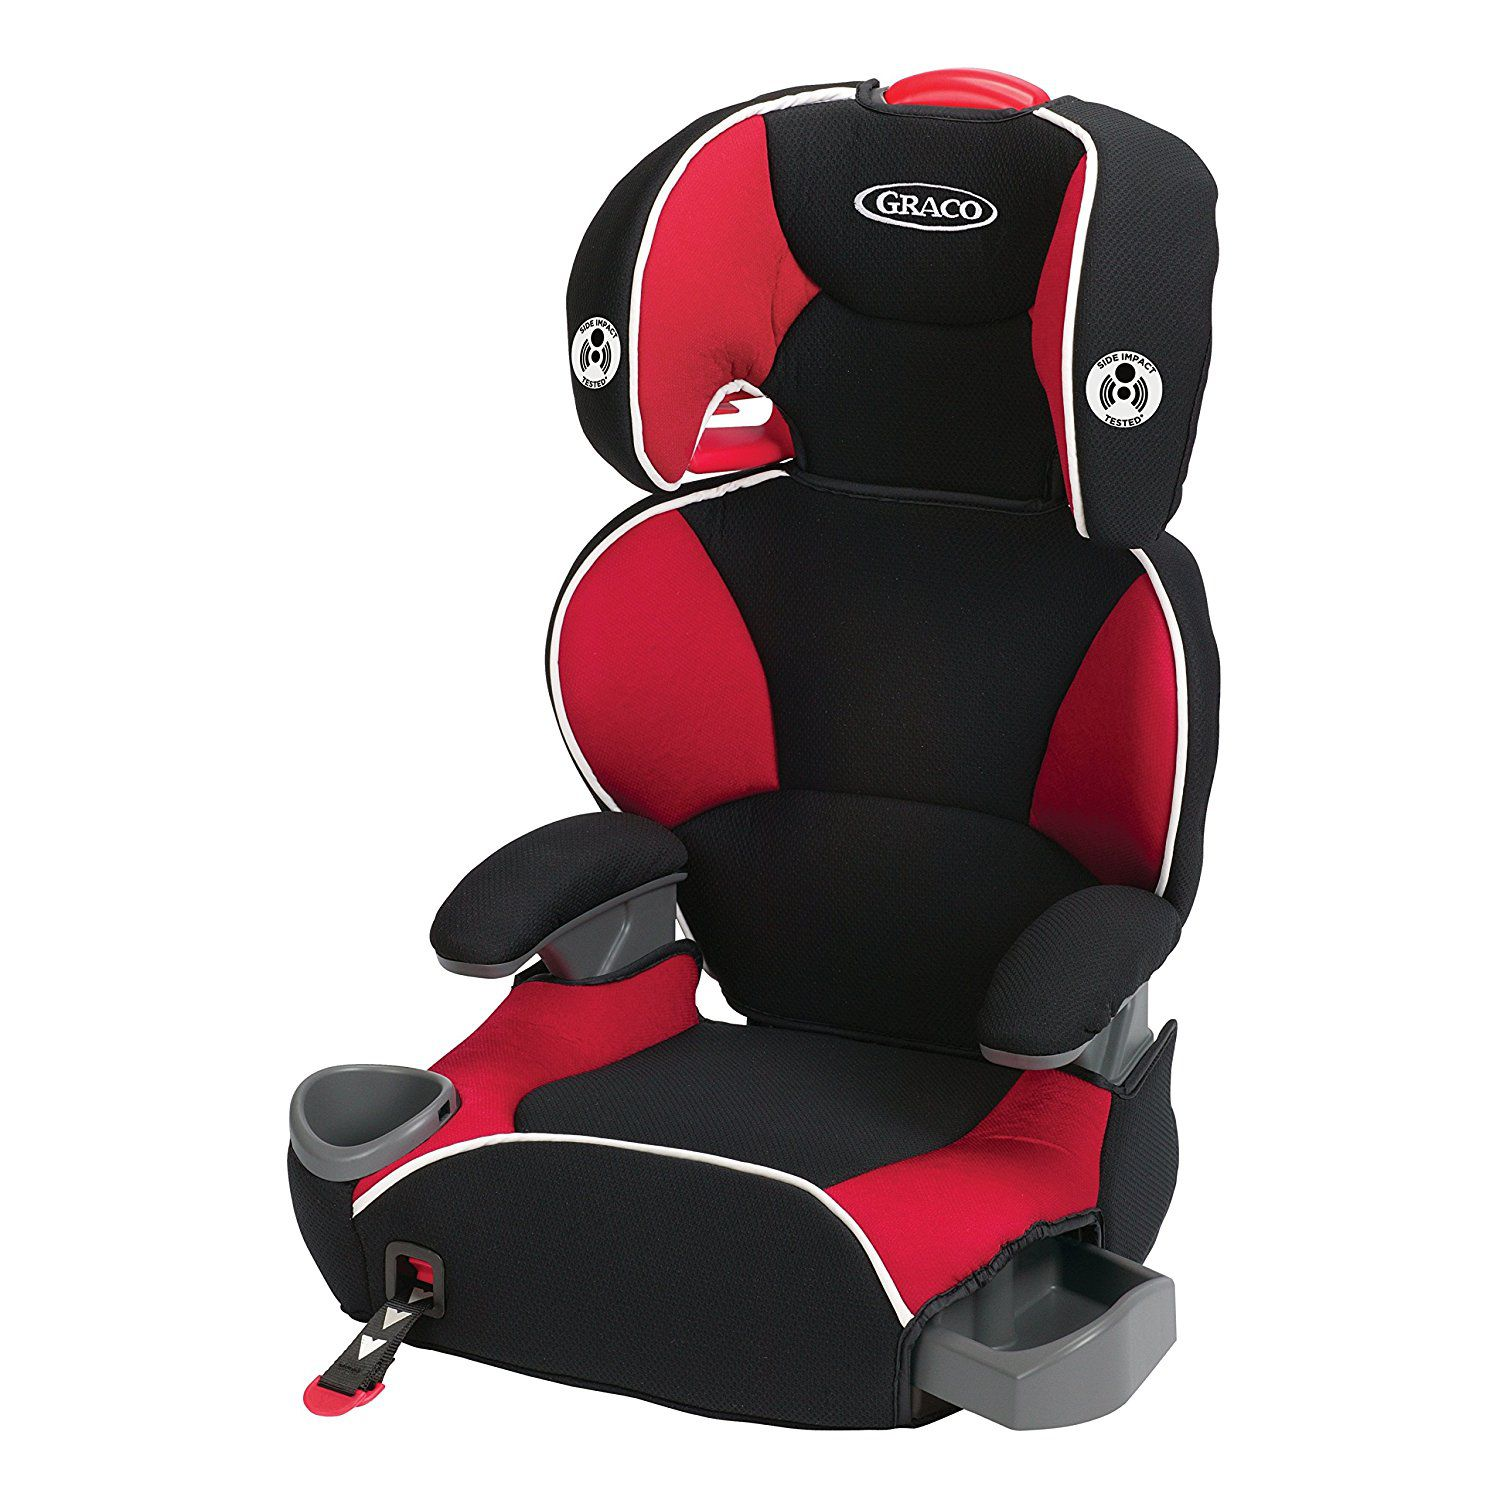 The 7 Best Booster Seats To Buy In 2019